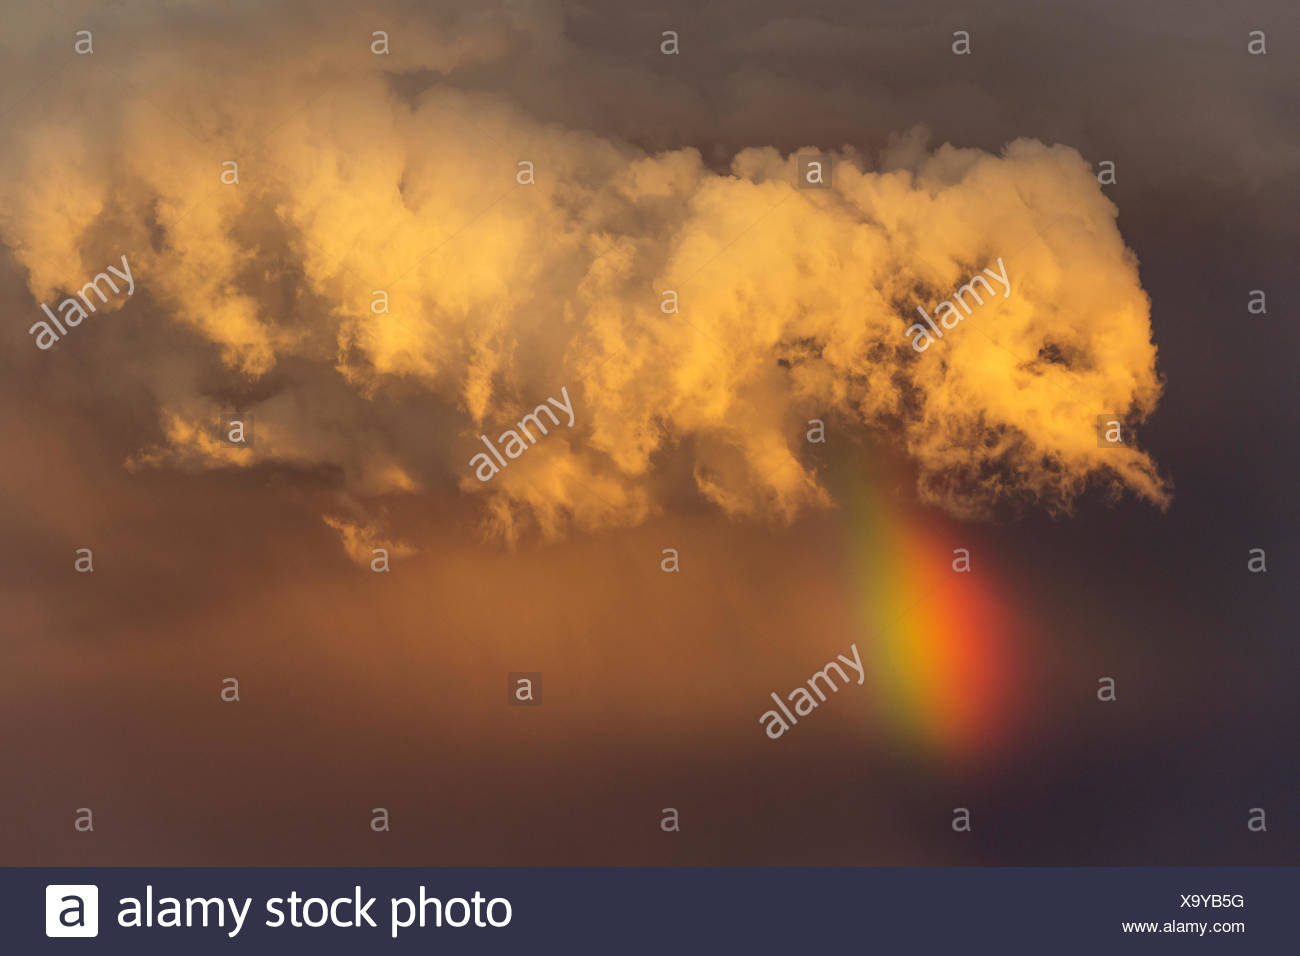 Evening thunderstorm with Cumulonimbus cloud and rainbow above a sand dune, rainy season, Kalahari Desert - Stock Image